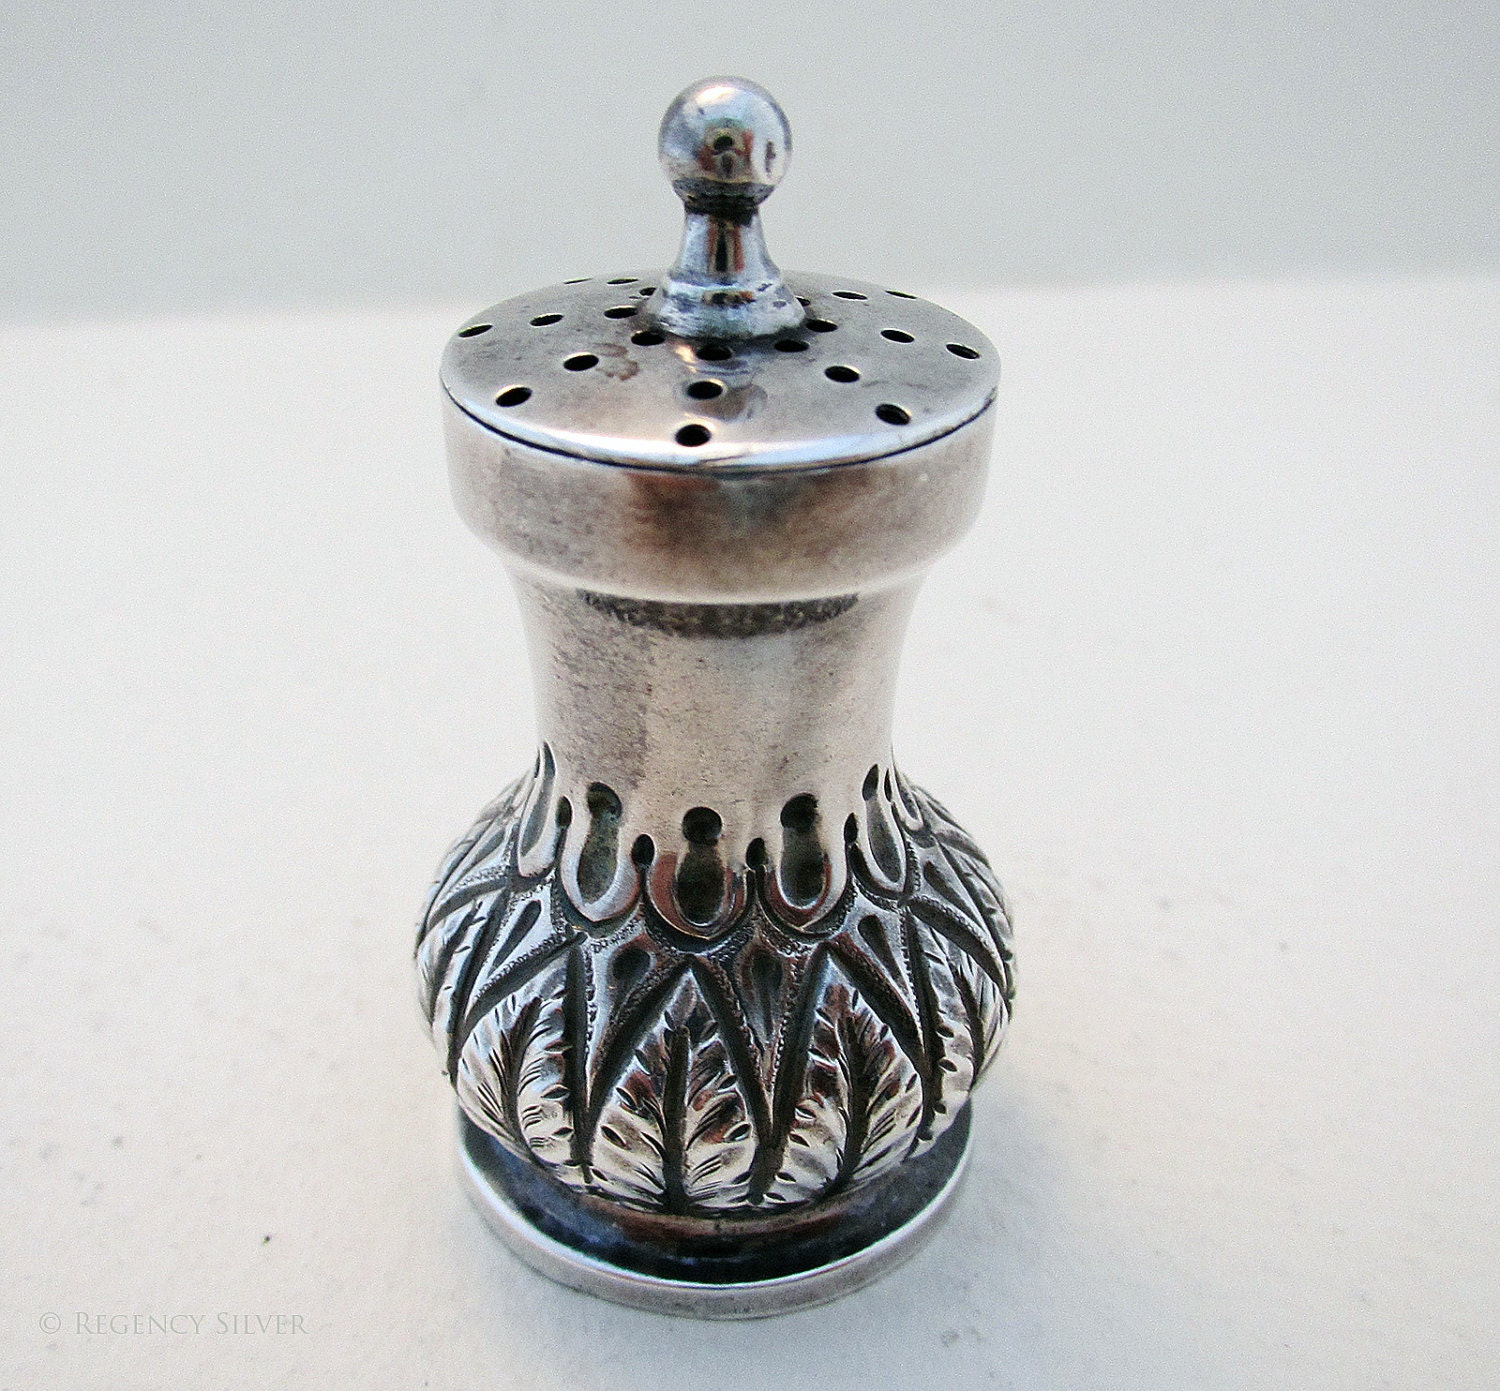 Victorian pounce pot 19thcentury (1889) antique solid sterling silver used for inkwell tray by Henry Charles Freeman